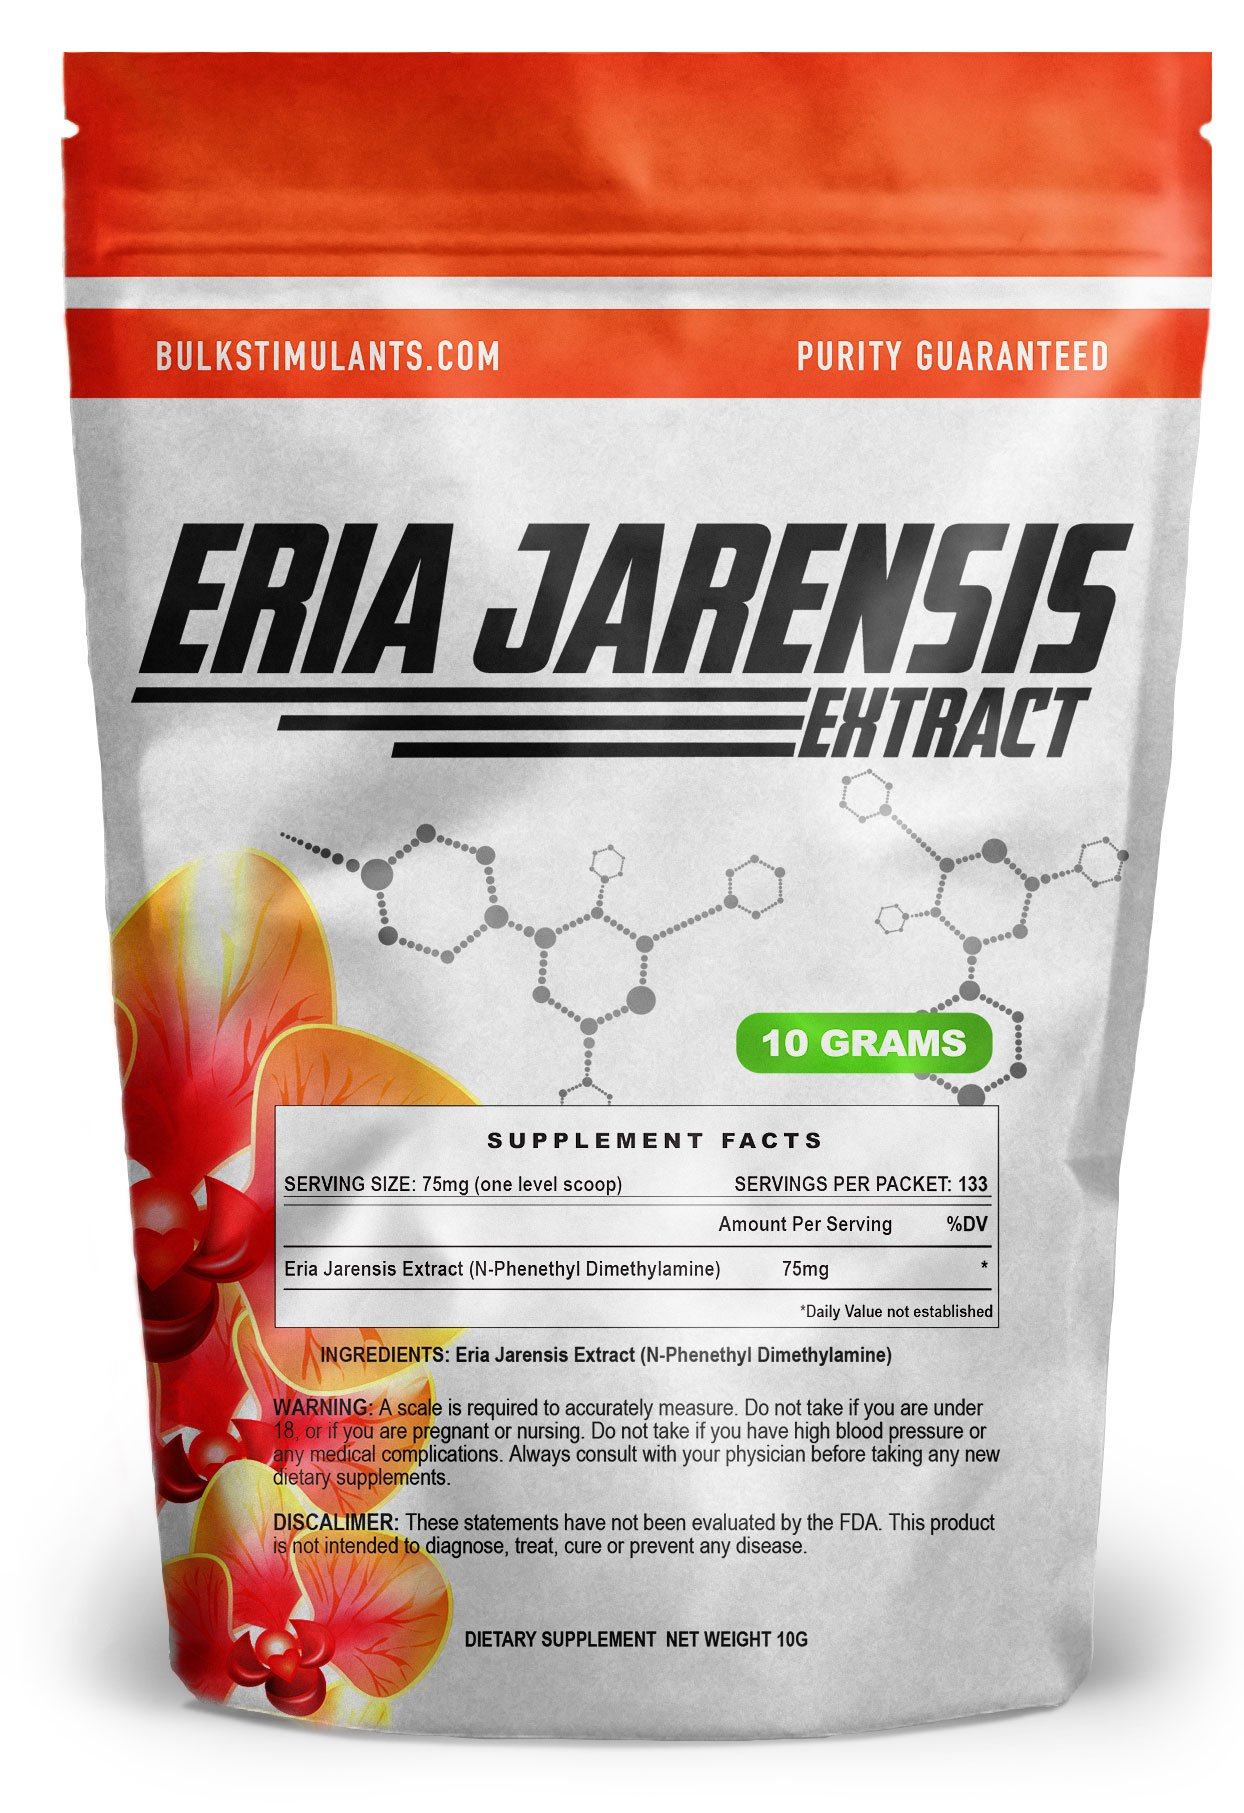 ERIA JARENSIS Extract - Bulk Powder 10 Grams 133 Servings - New Pea Supplement ✮ New Stimulant and NOOTROPIC ✮ Increase Focus Energy Cognitive Performance - Scoop Included by BulkStimulants.com